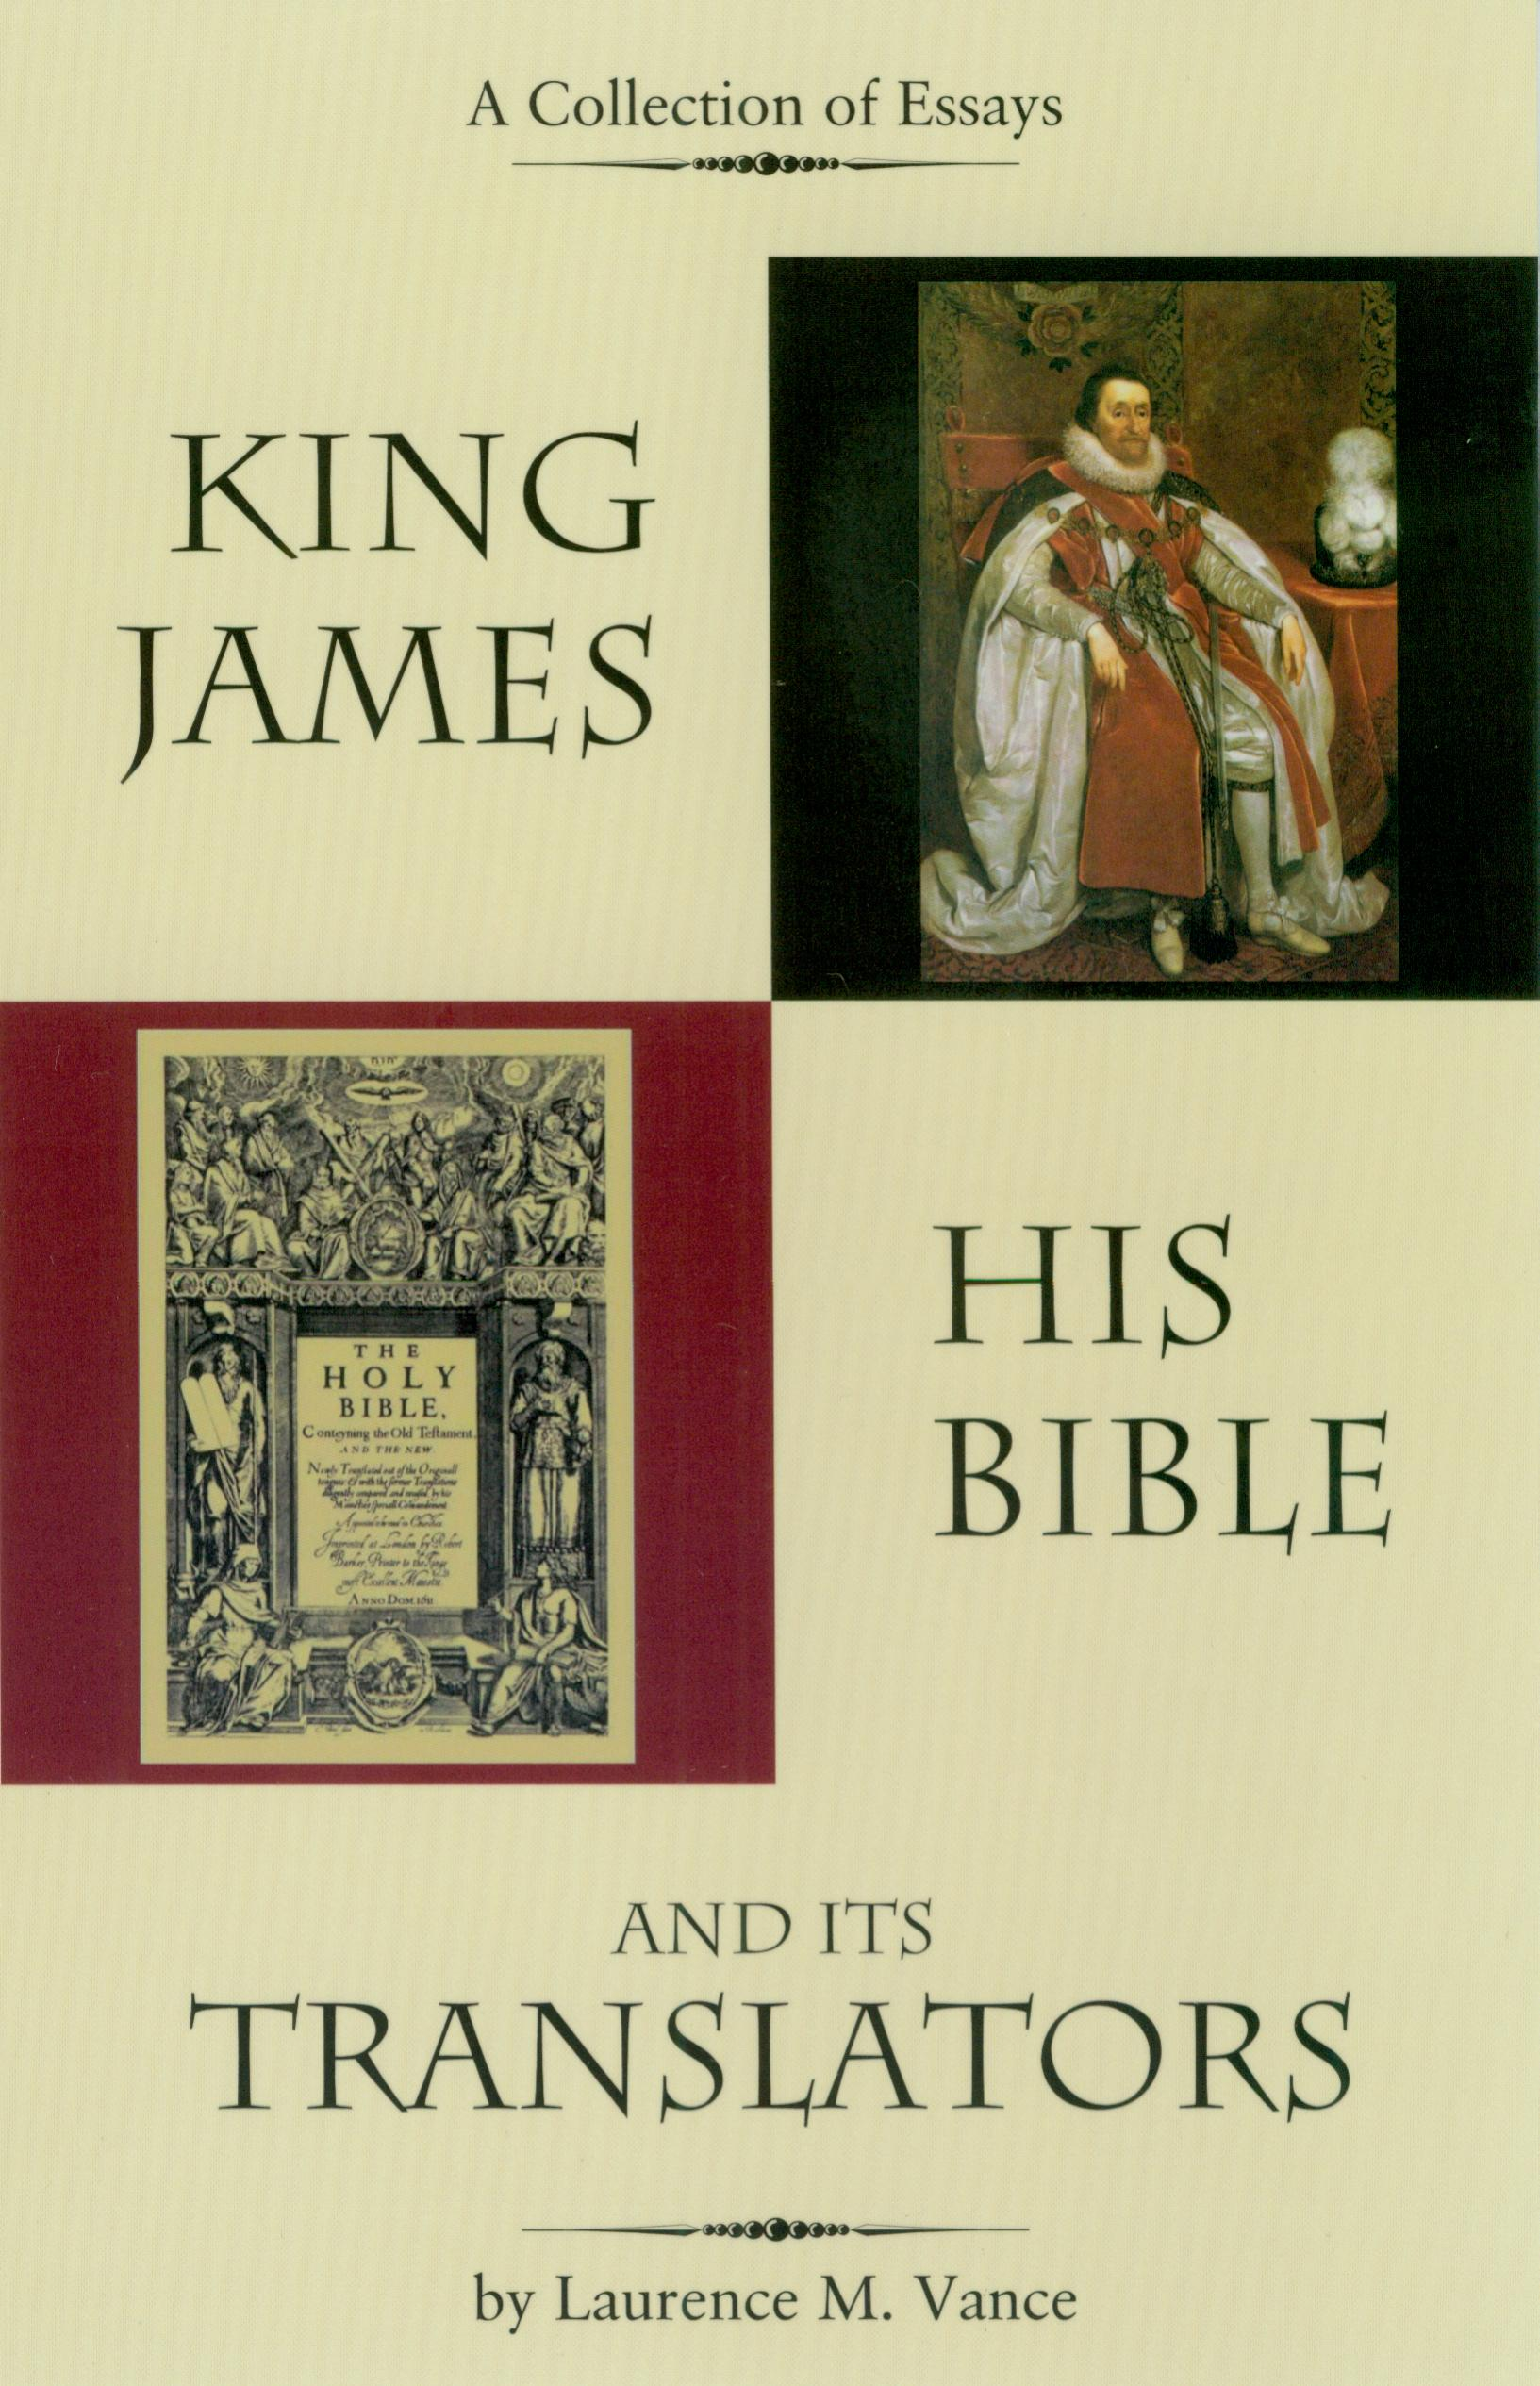 King James, His Bible and Its Translators, 172 pages, paperback, $12.95